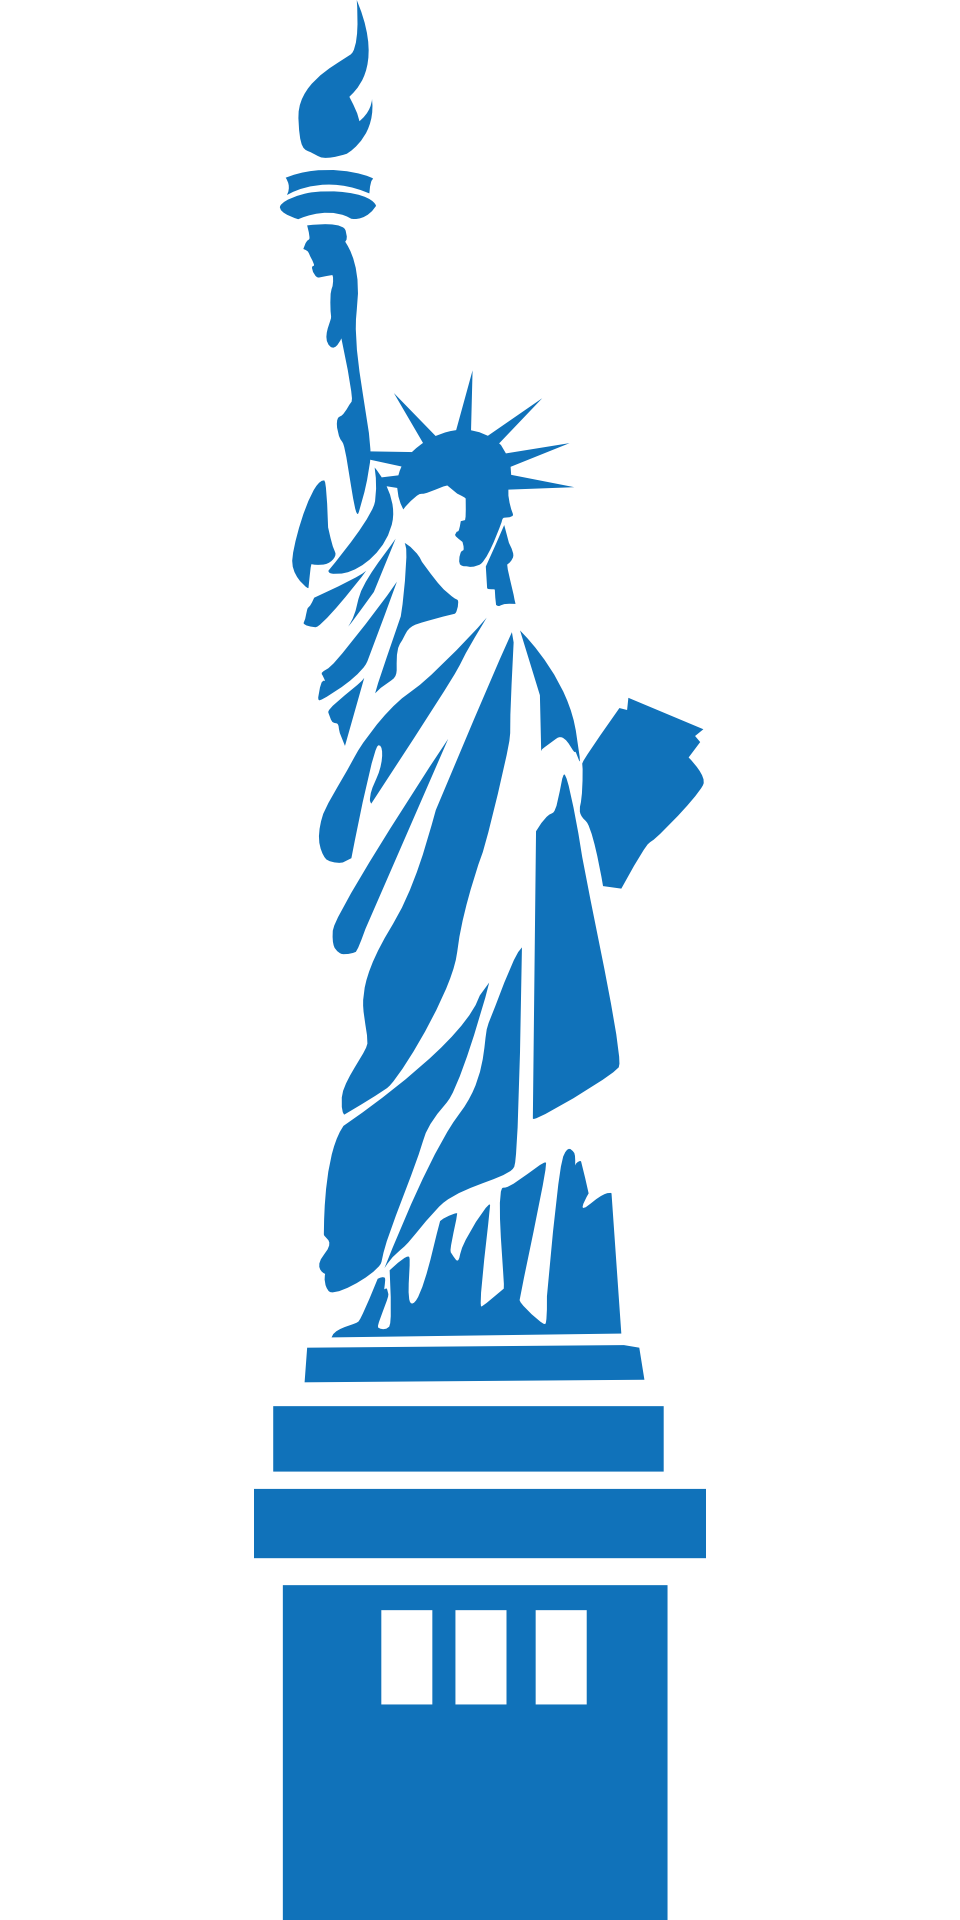 statue-of-liberty-147016.png